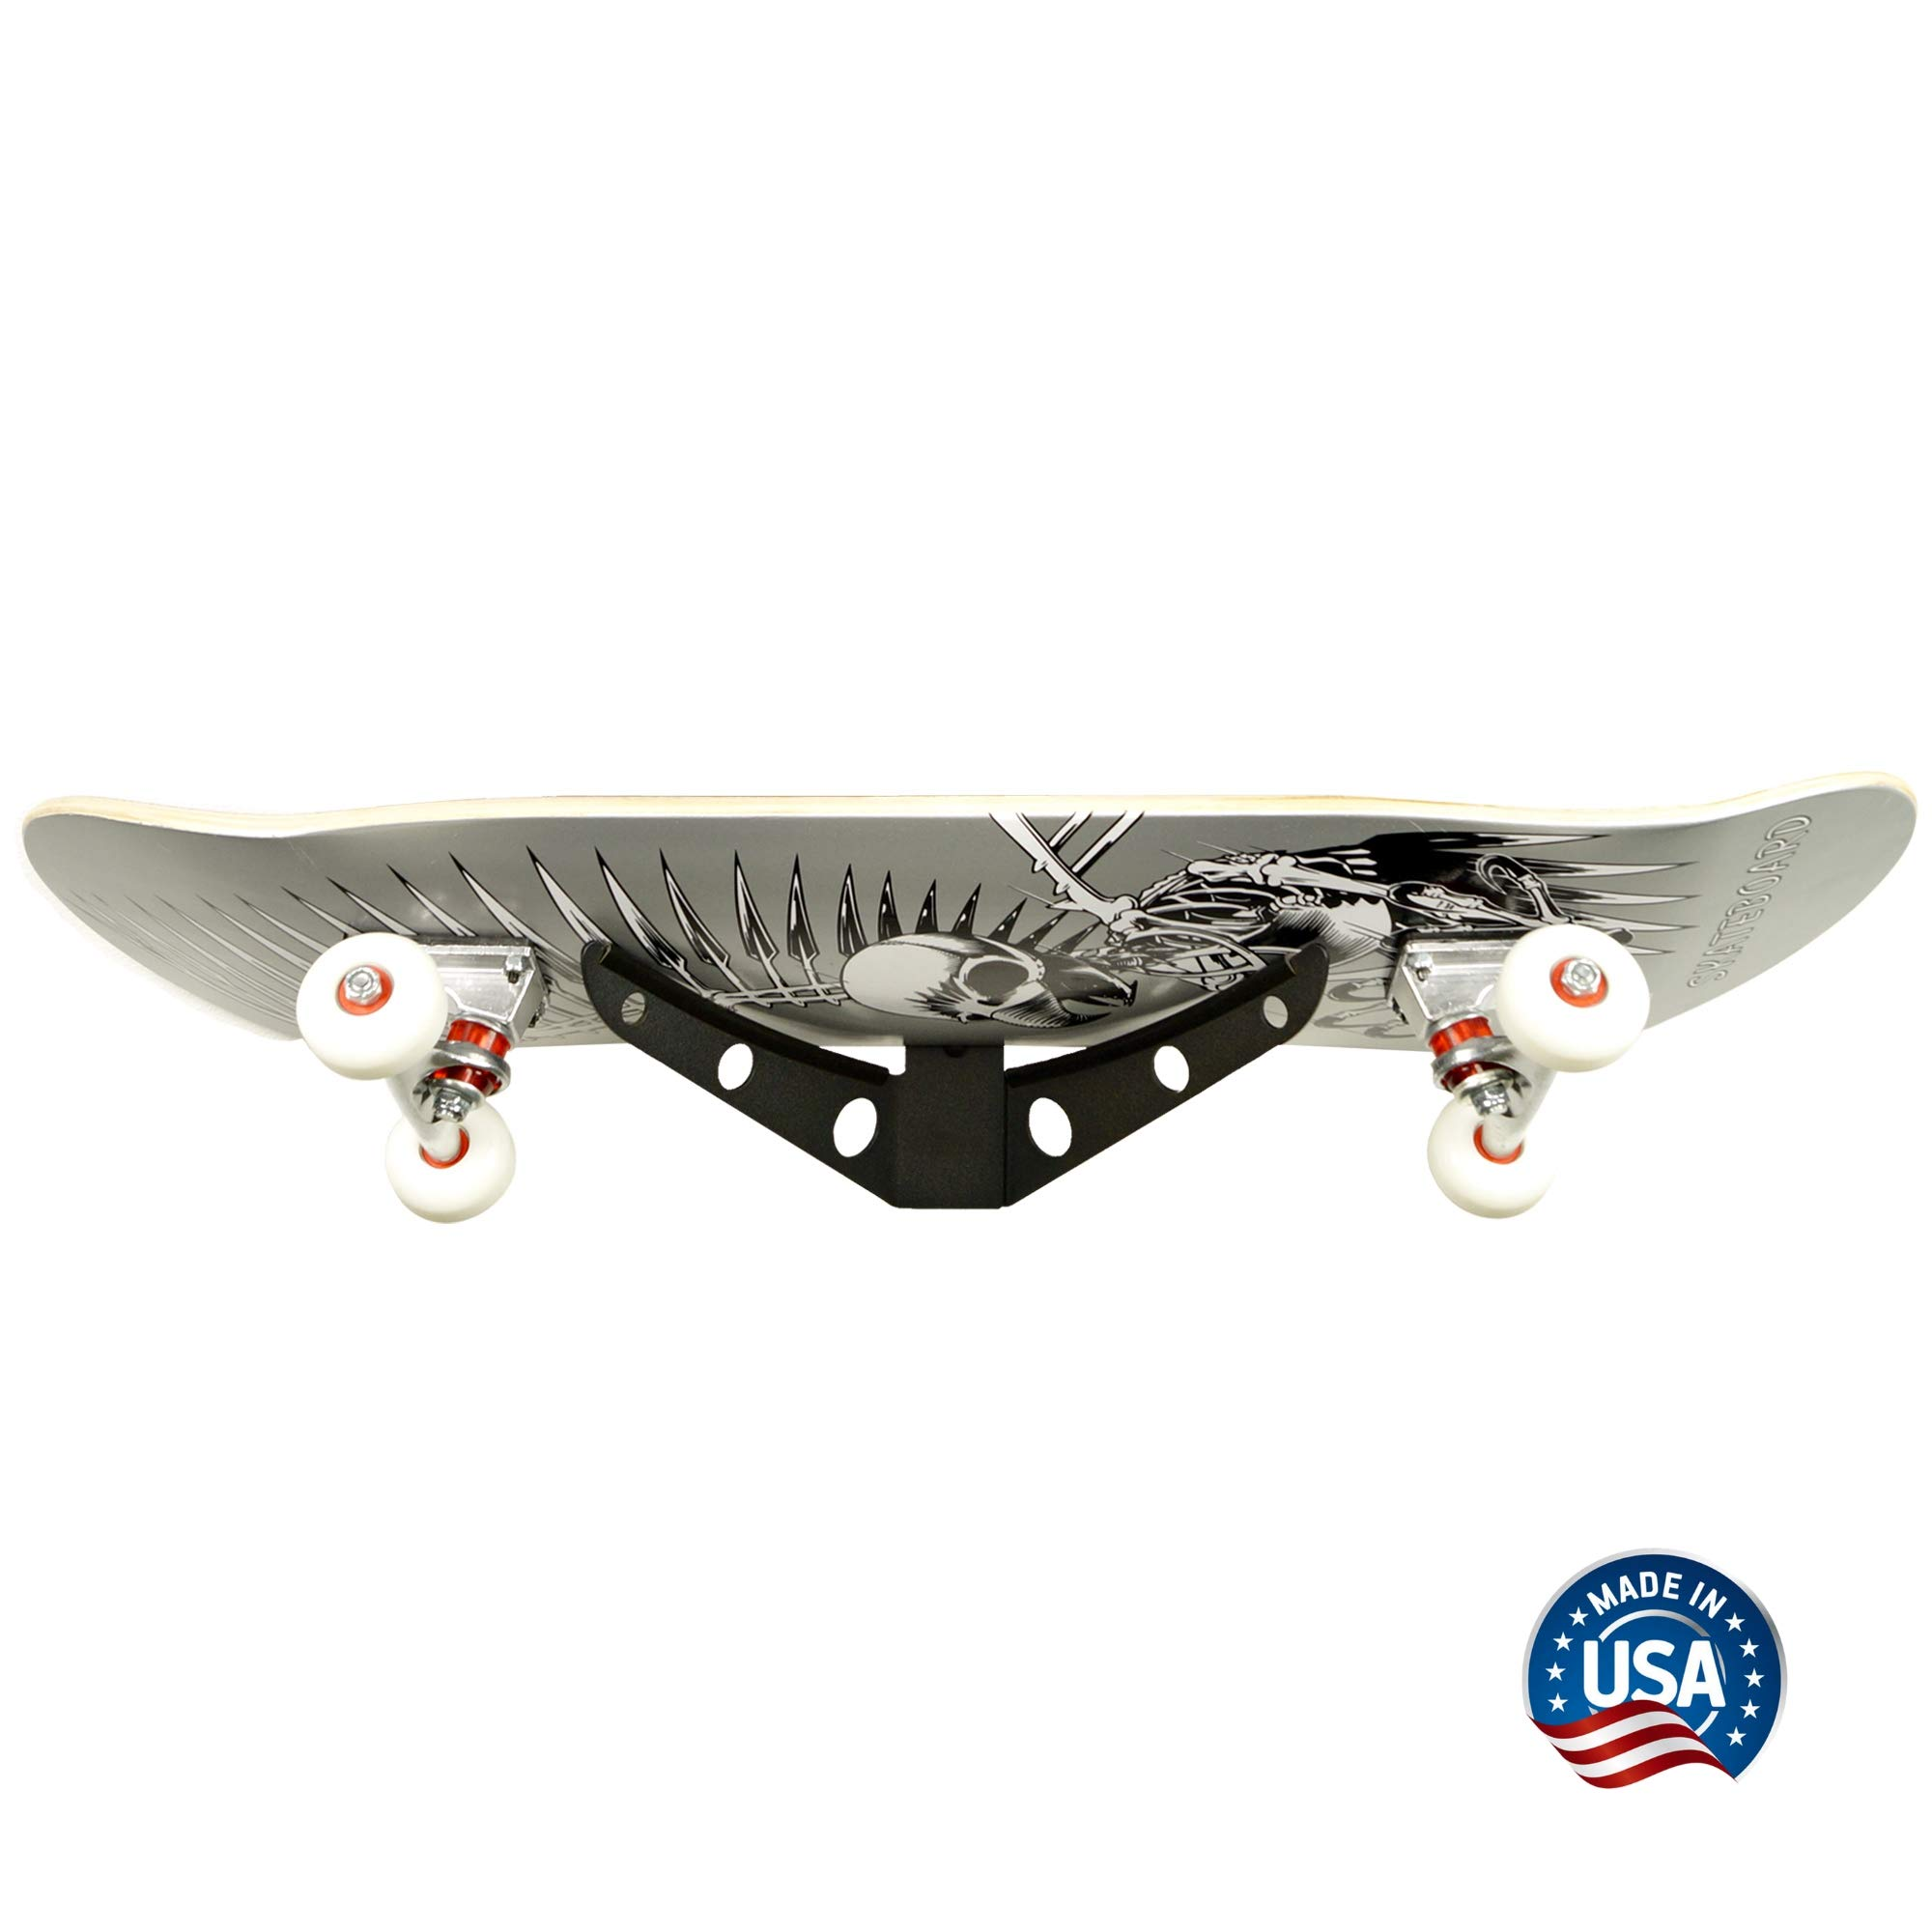 Koova Skateboard Rack Wall Mount, Board Storage and Display Holder, Easy to Install Powder Coated Steel Frame, Vertical Space Saving Design, Accessory Organizer - Made in USA…